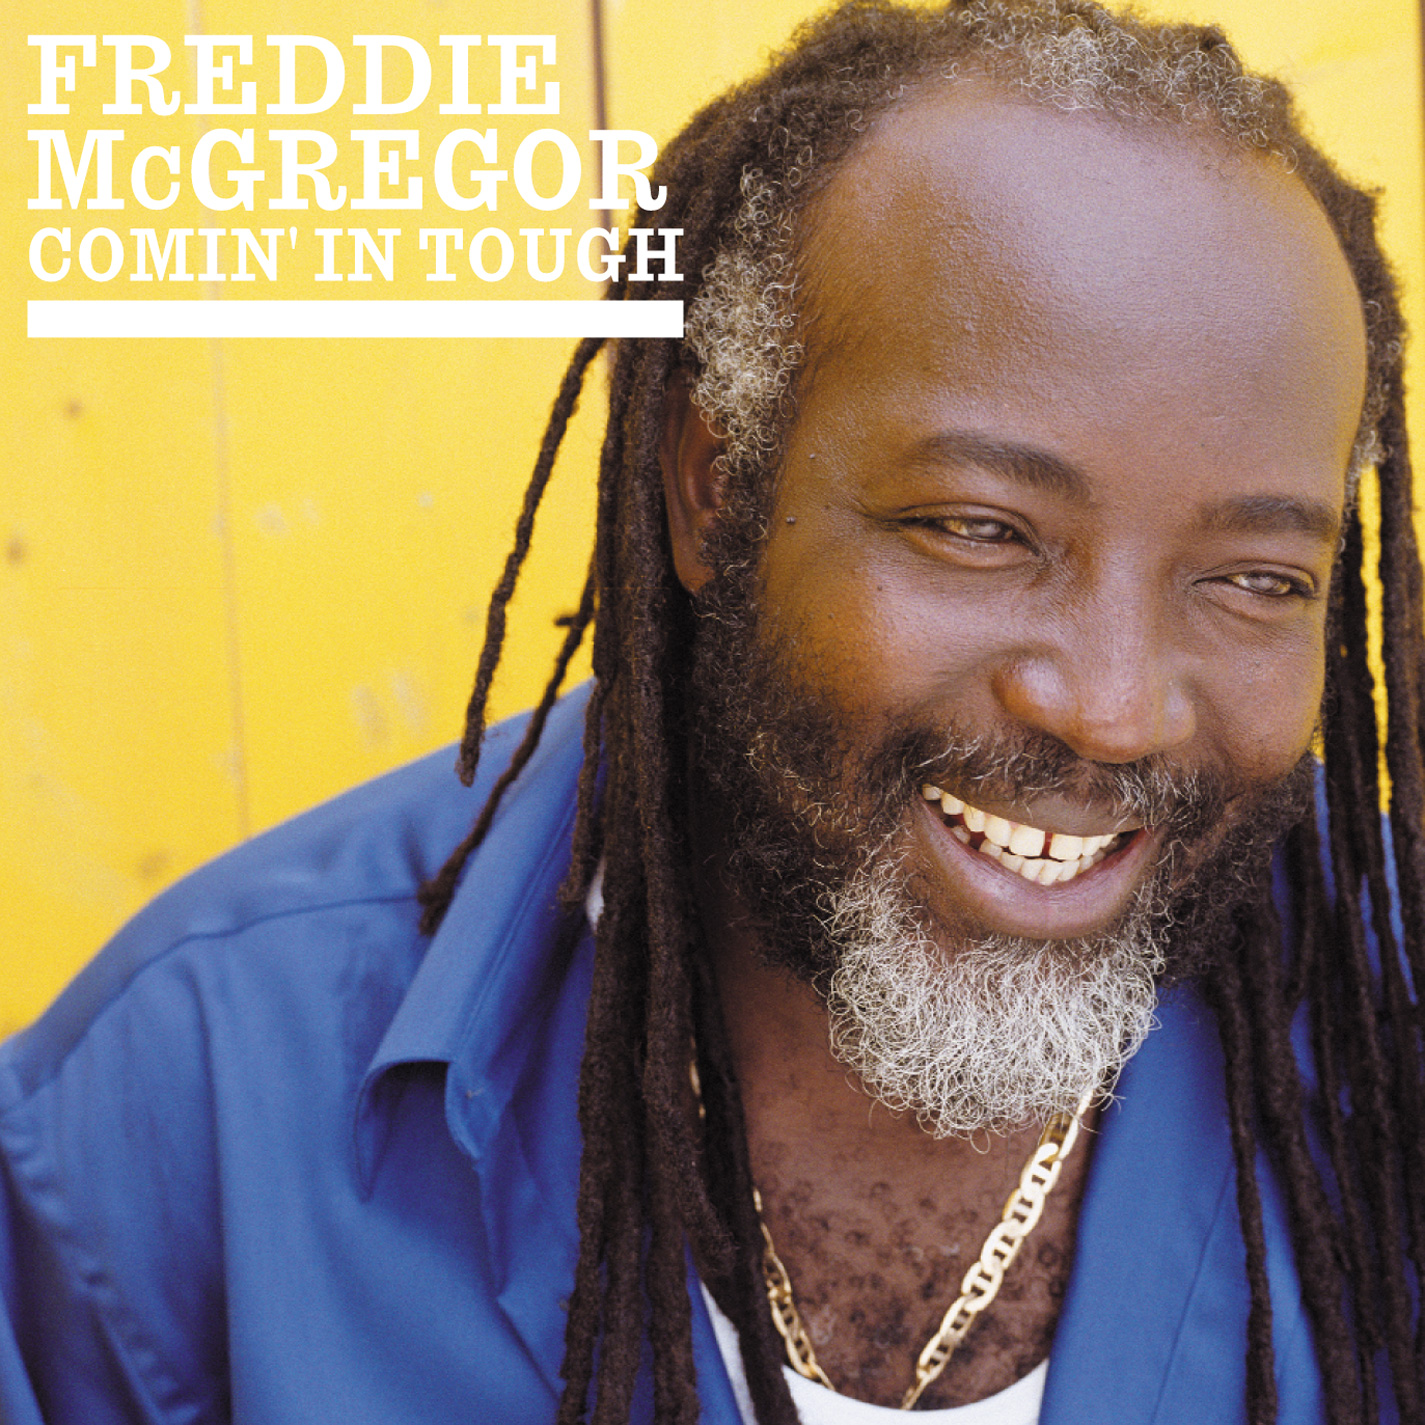 Freddie Mcgregor Comin In Tough Vp Records